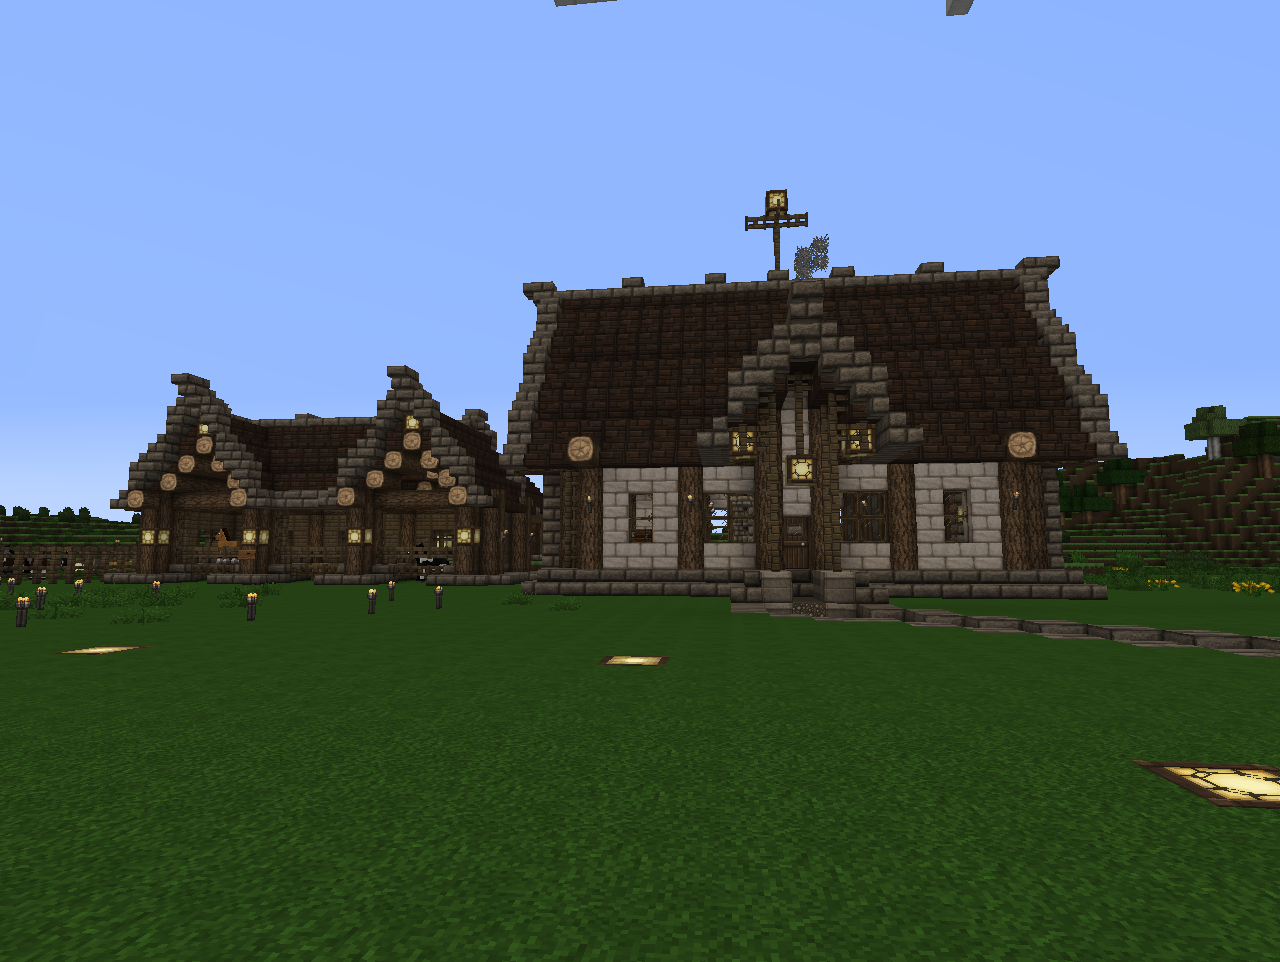 Horse Ranch House and Stables at spawn Elysium Crafting ... on daylight ranch house plans, minecraft log cabin floor plans, minecraft medieval castle plans, minecraft mansion plans, minecraft apartment complex plans, minecraft chicken coop plans, minecraft skyscraper plans,